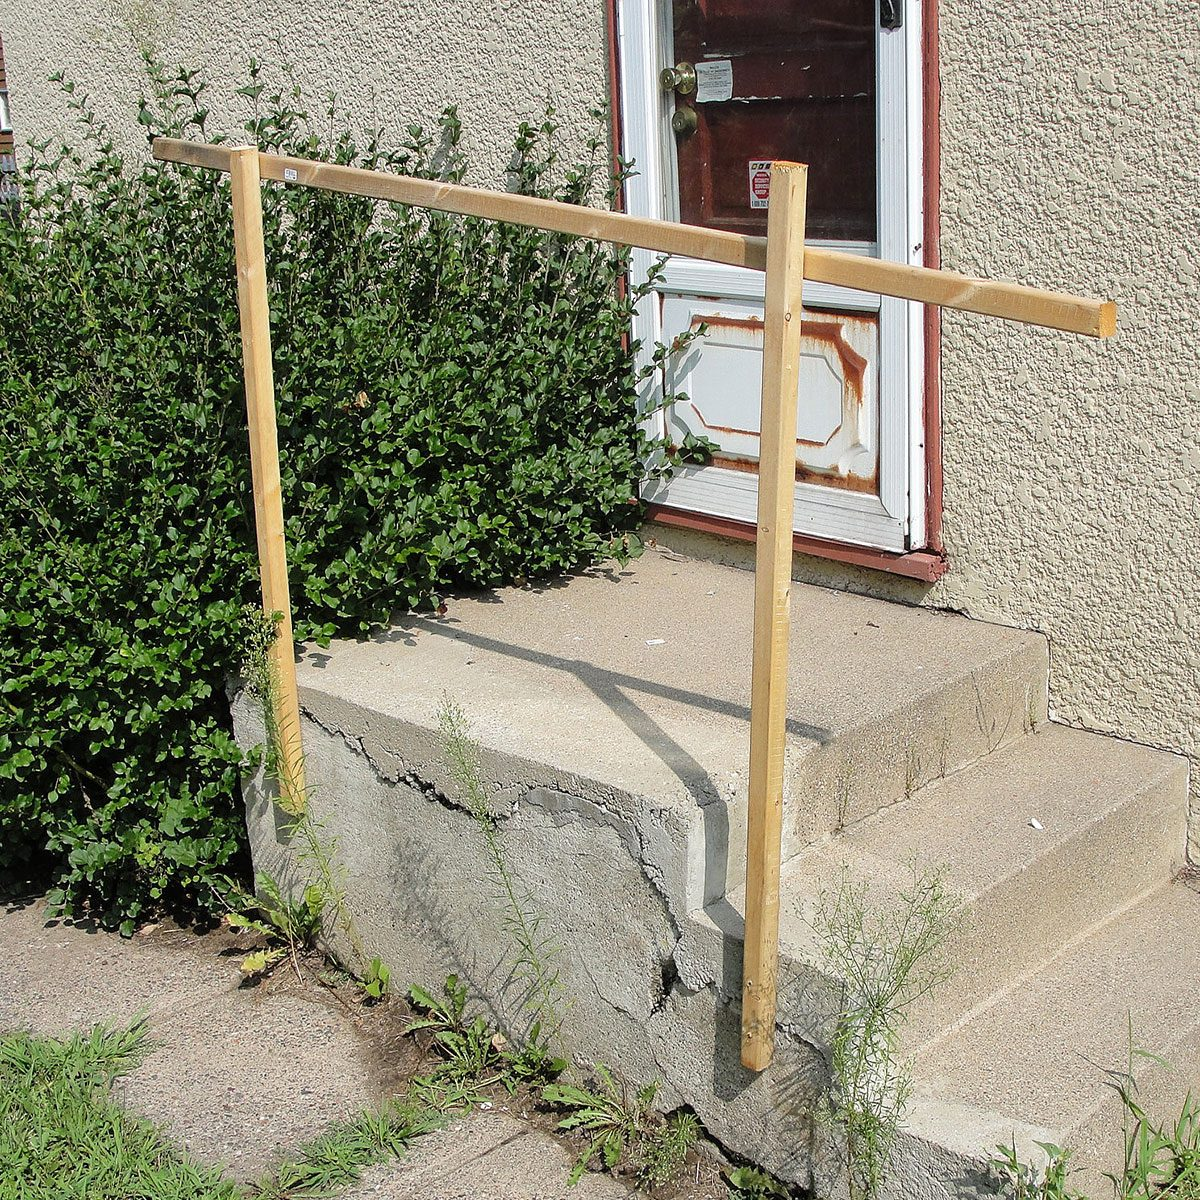 Handrail made from thin pieces of wood